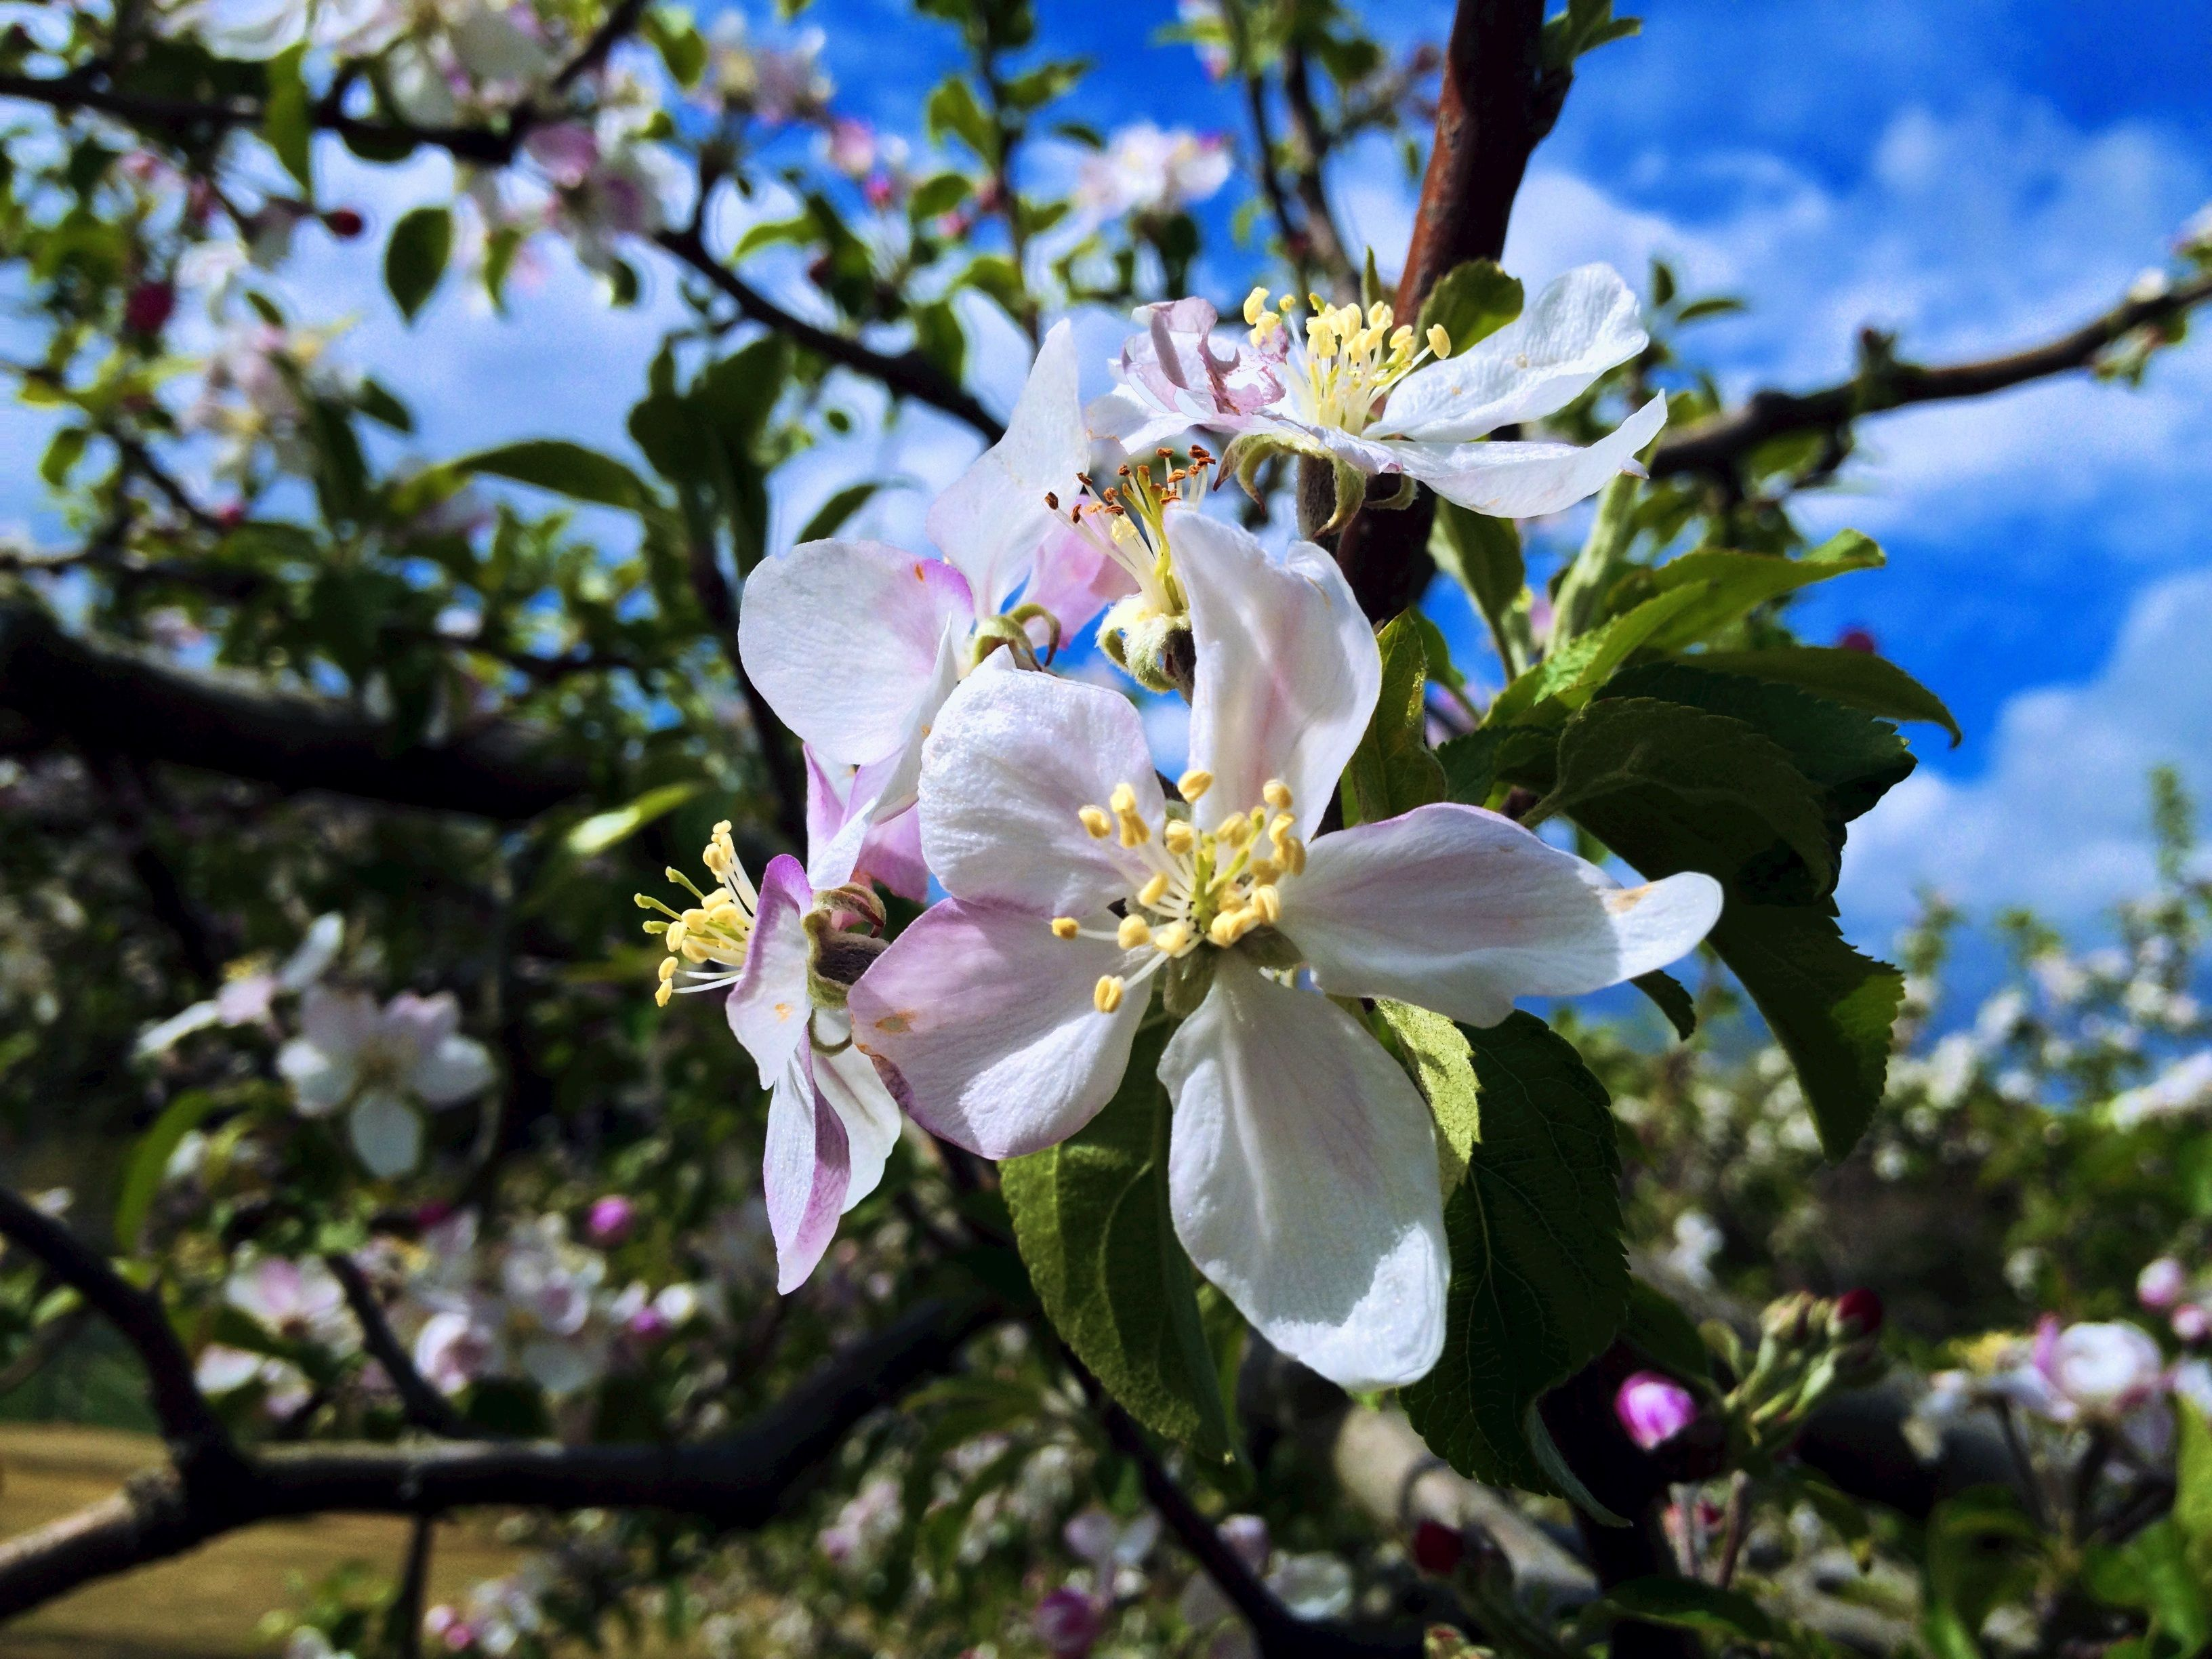 Flowers of apples.